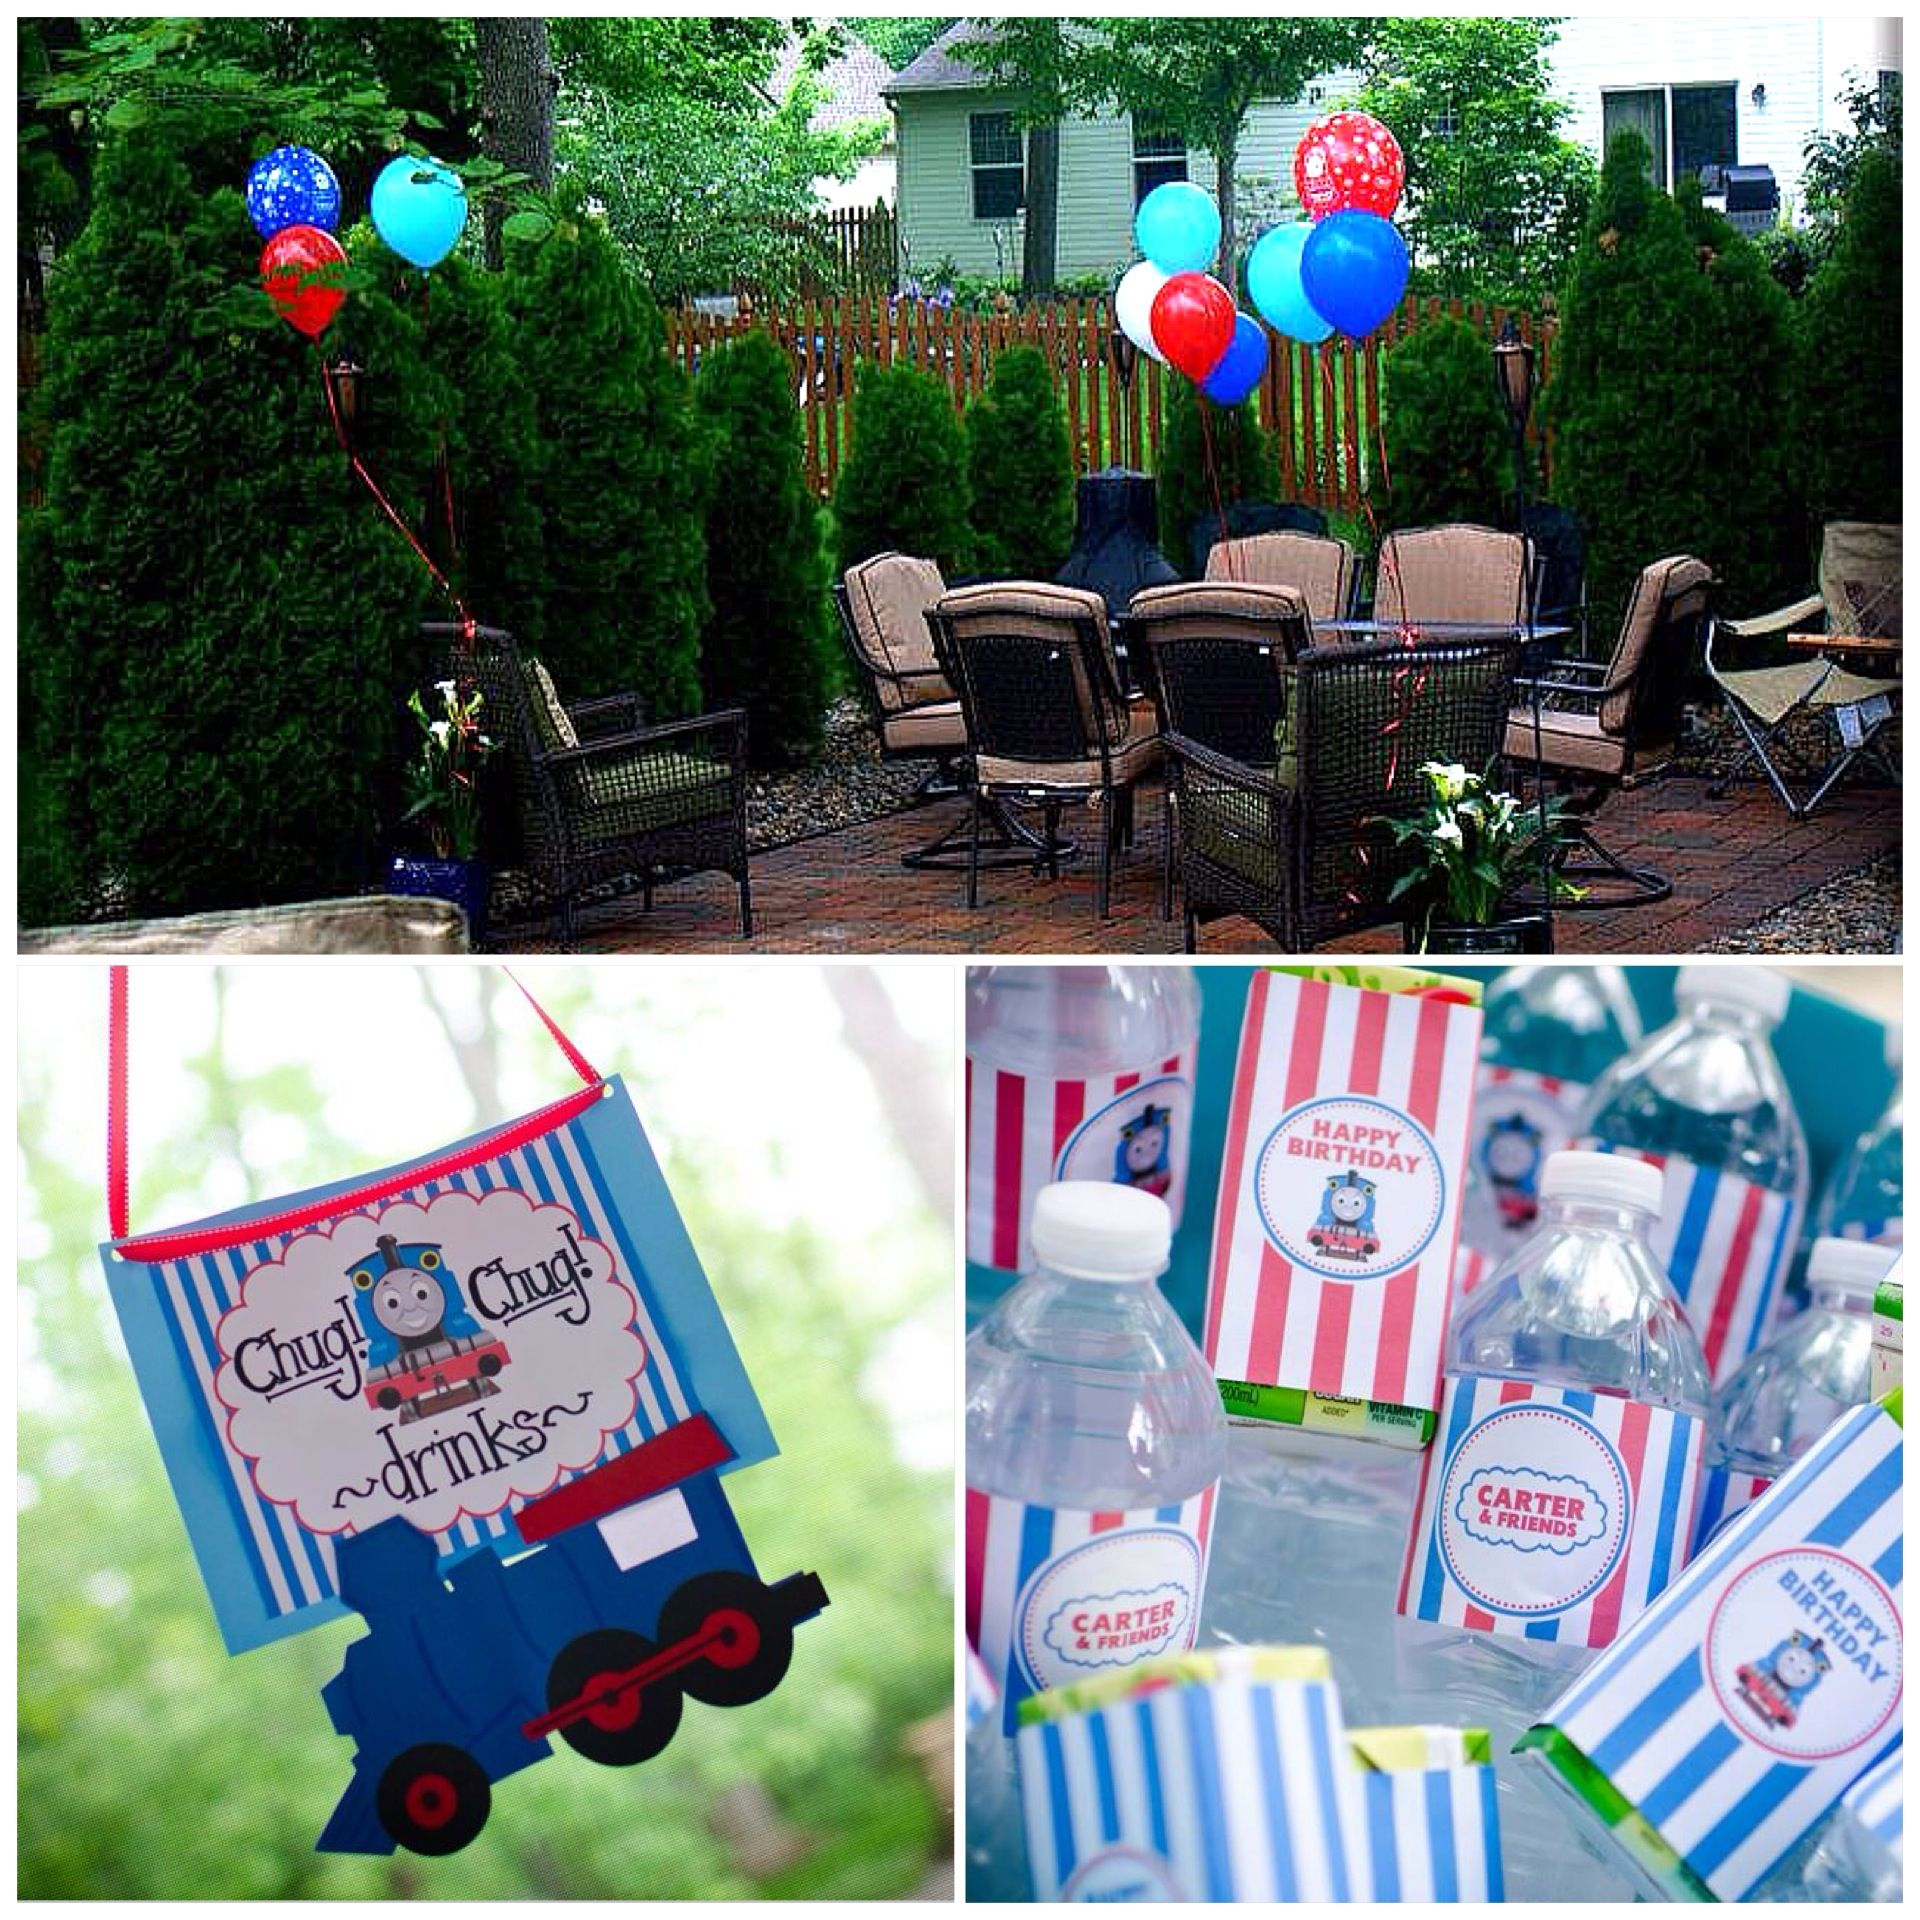 thomas the train birthday party balloons in backyard drinks and